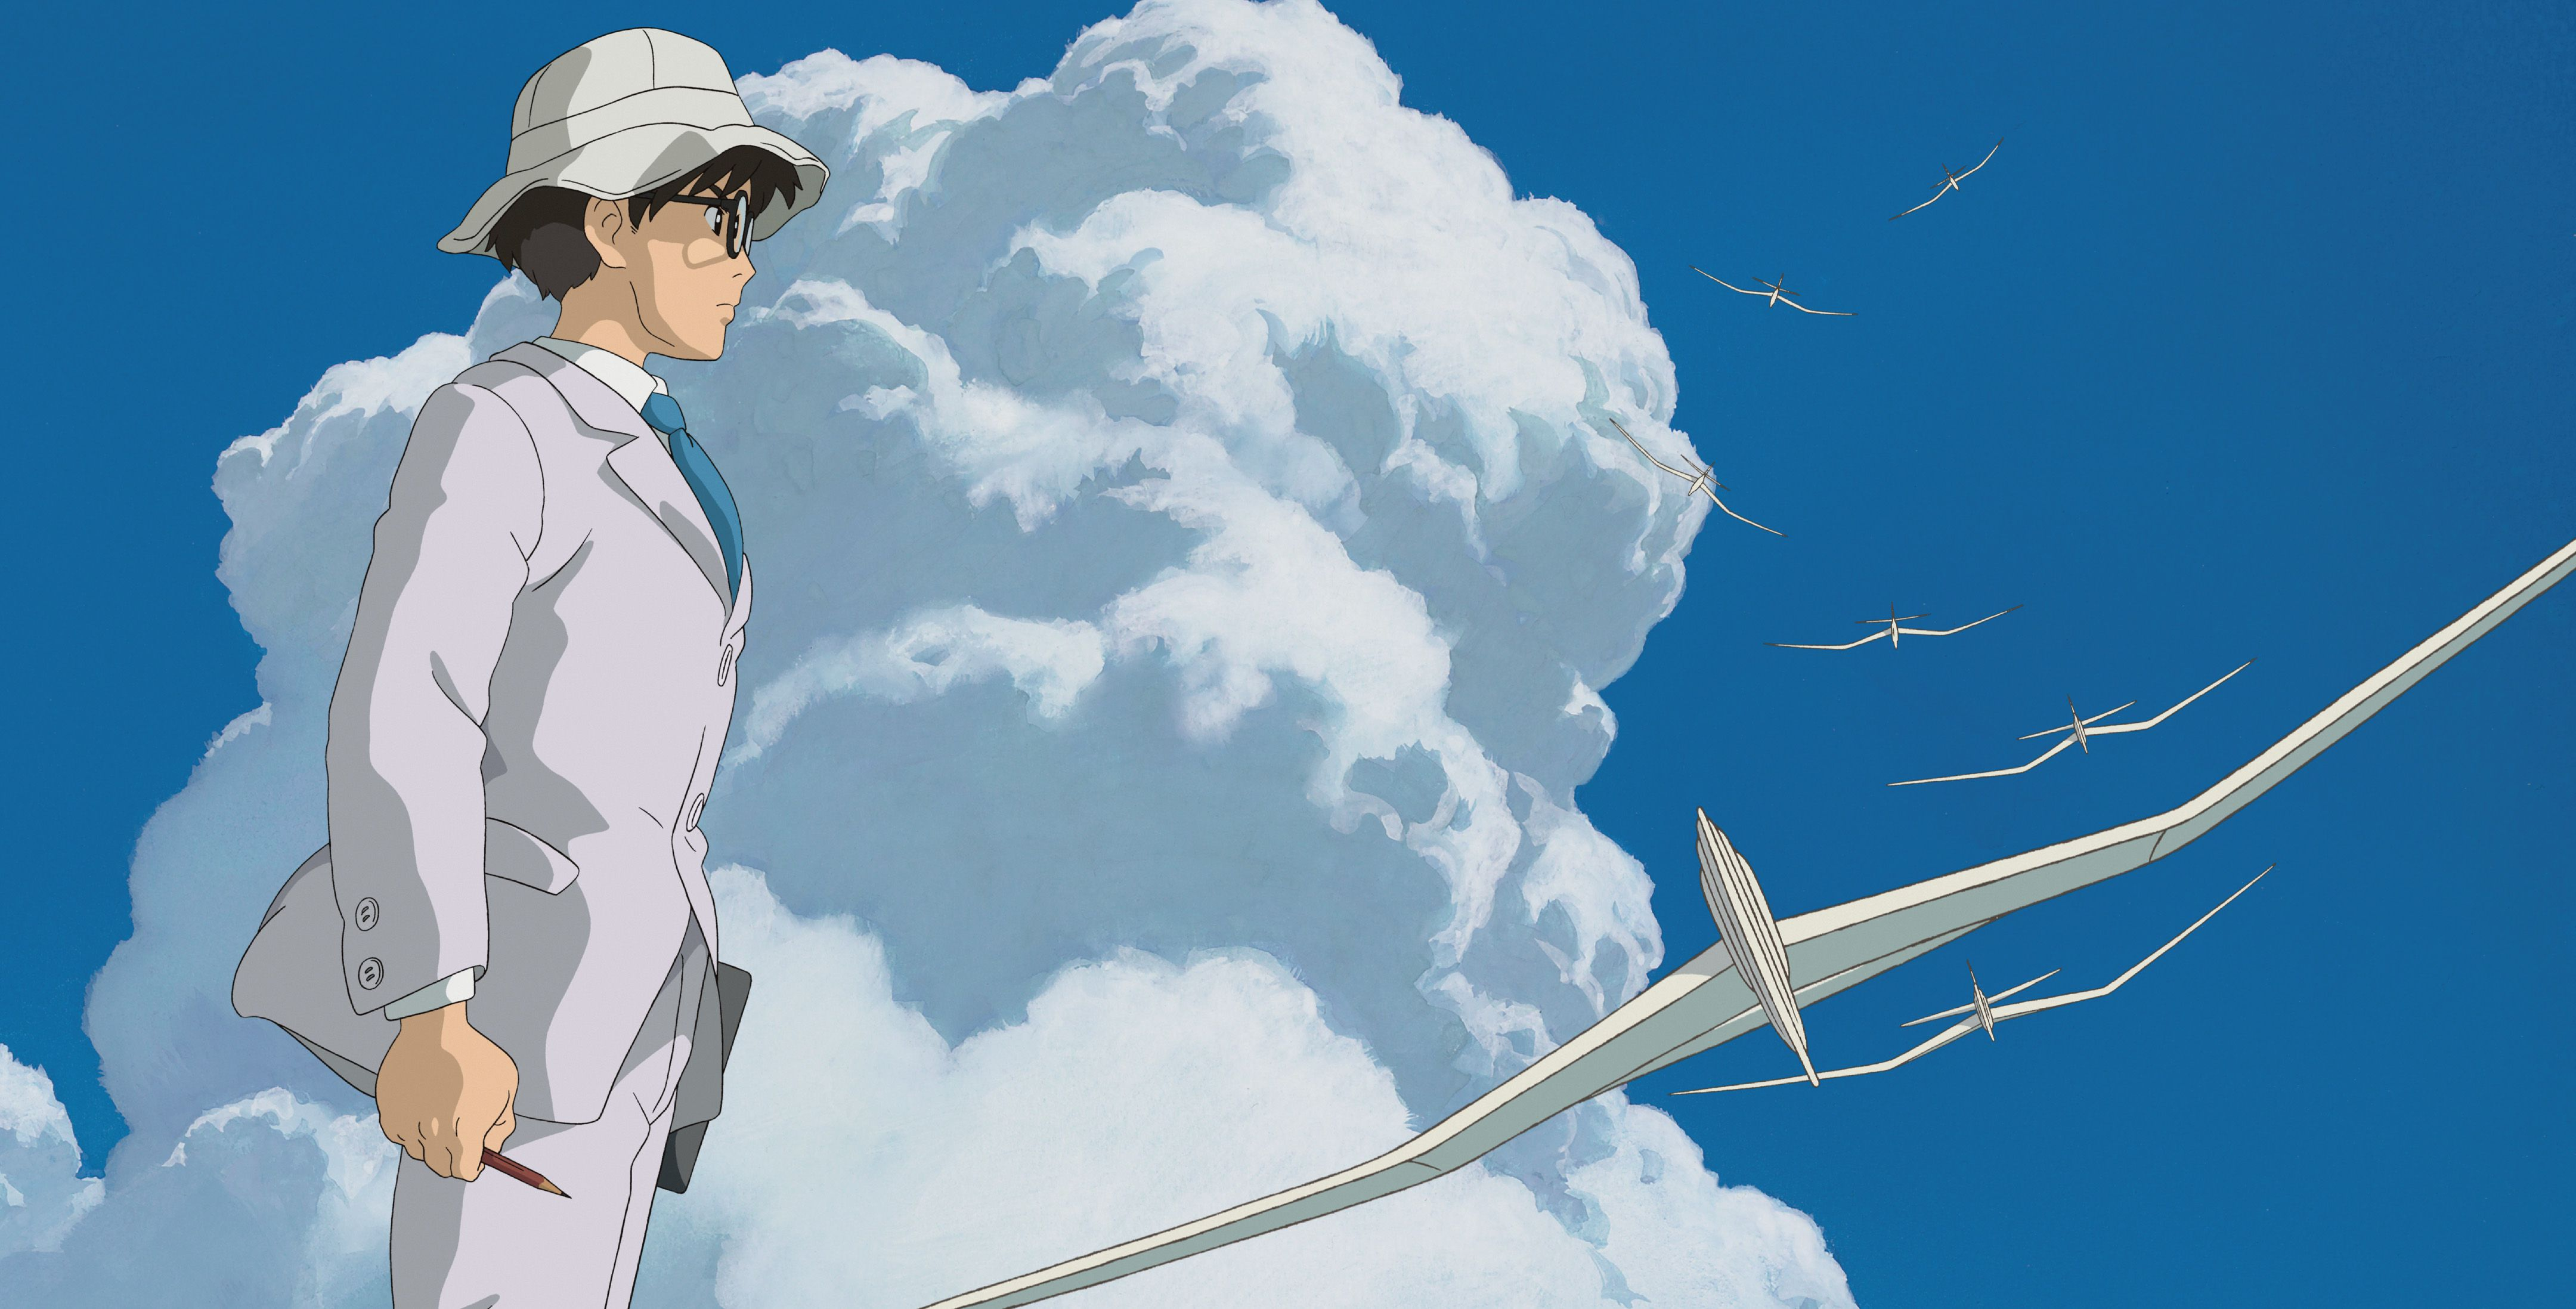 An image from The Wind Rises